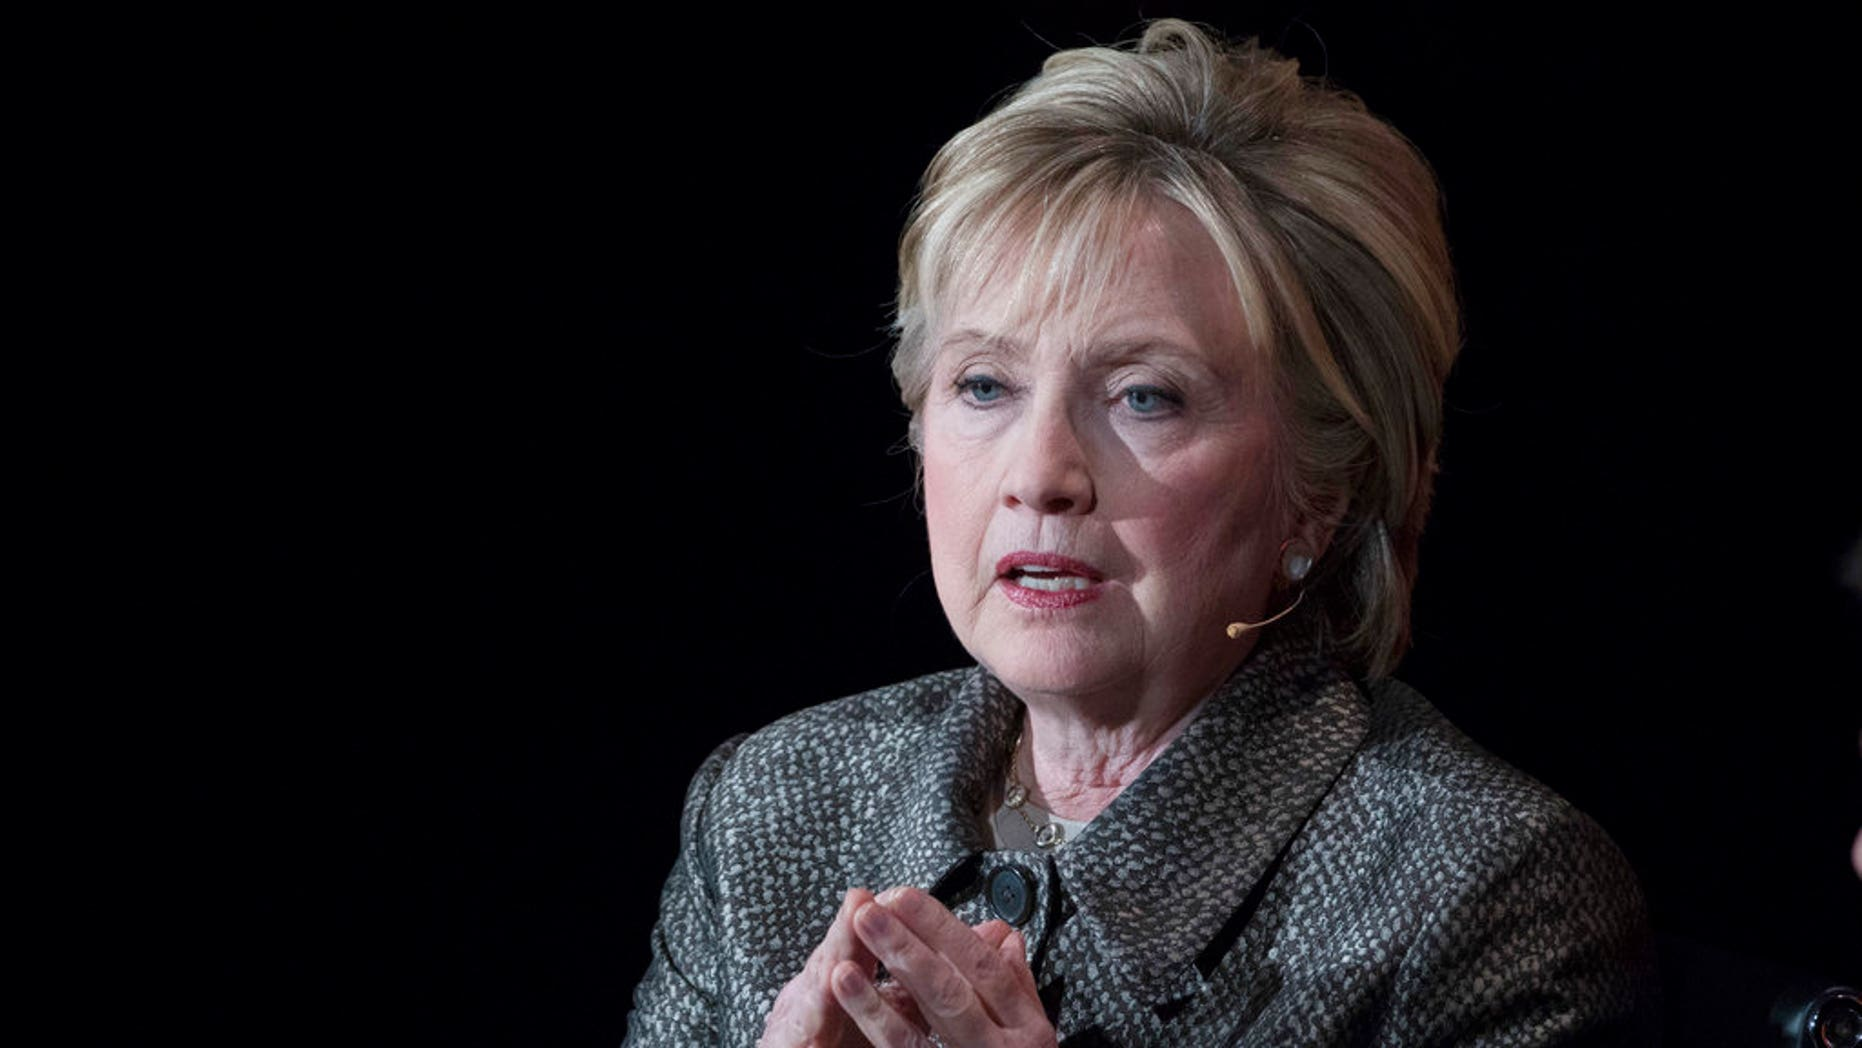 FILE - In this April 6, 2017, file photo, former Secretary of State Hillary Clinton speaks in New York. The Justice Department's internal watchdog is expected to criticize the FBI's handling of the Clinton email investigation, stepping into a political minefield as it details how a determinedly non-partisan law enforcement agency came to be entangled in the 2016 presidential race. President Donald Trump will look to the inspector general report to provide a fresh line of attack against the FBI's two former top officials, Director James Comey and his deputy, Andrew McCabe, as he claims that a politically tainted bureau tried to undermine his campaign and, through the Russia investigation, his presidency. (AP Photo/Mary Altaffer, File)